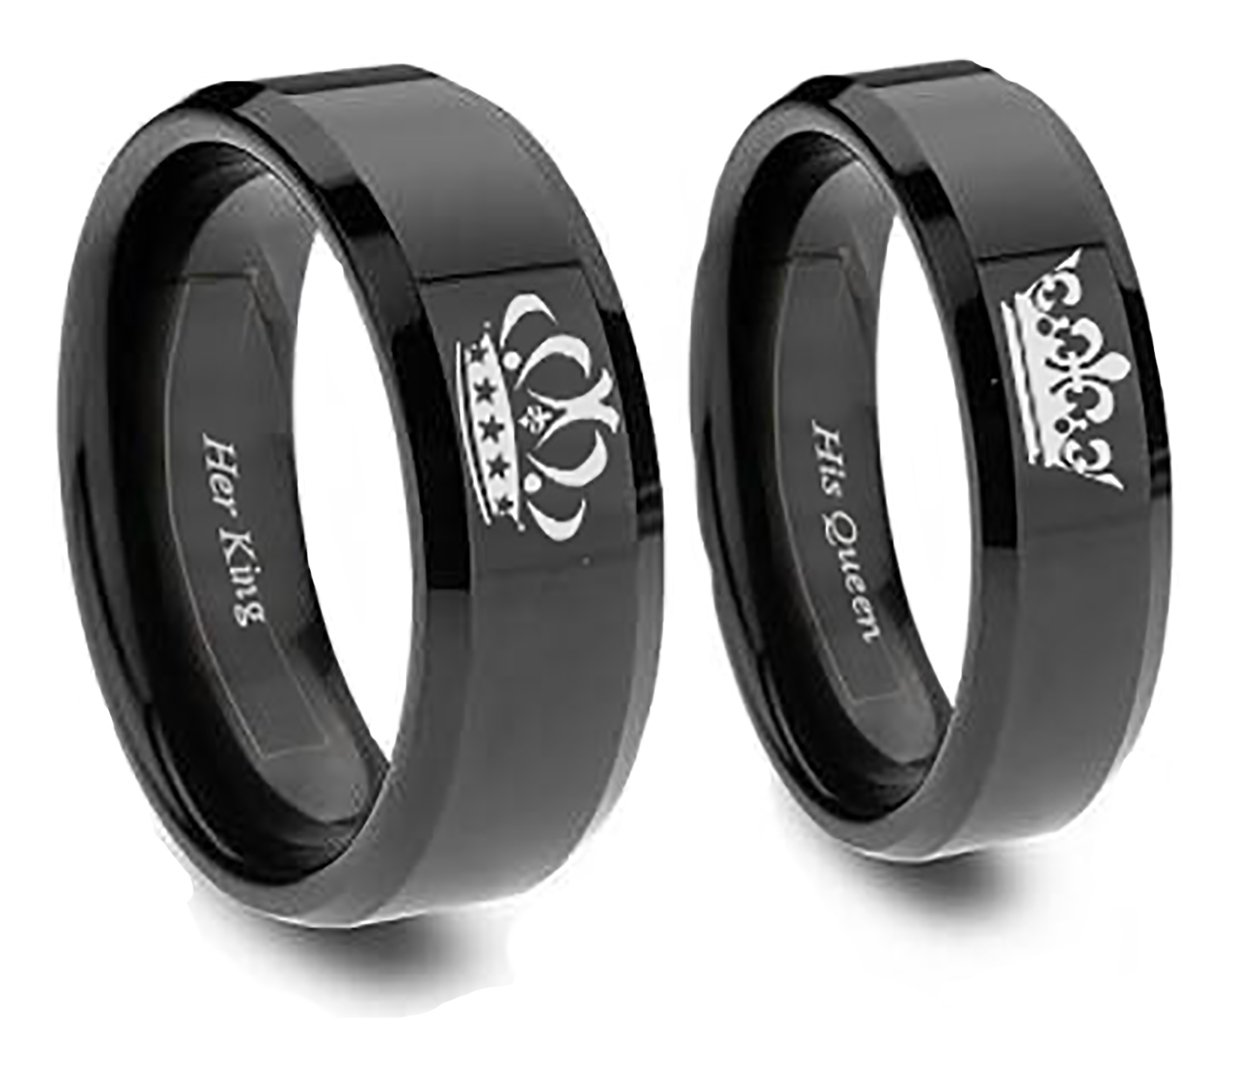 amazoncom king and queen ring set in blacktitanium his and hers couples set y southern designs sports outdoors - Black Wedding Rings For Him And Her